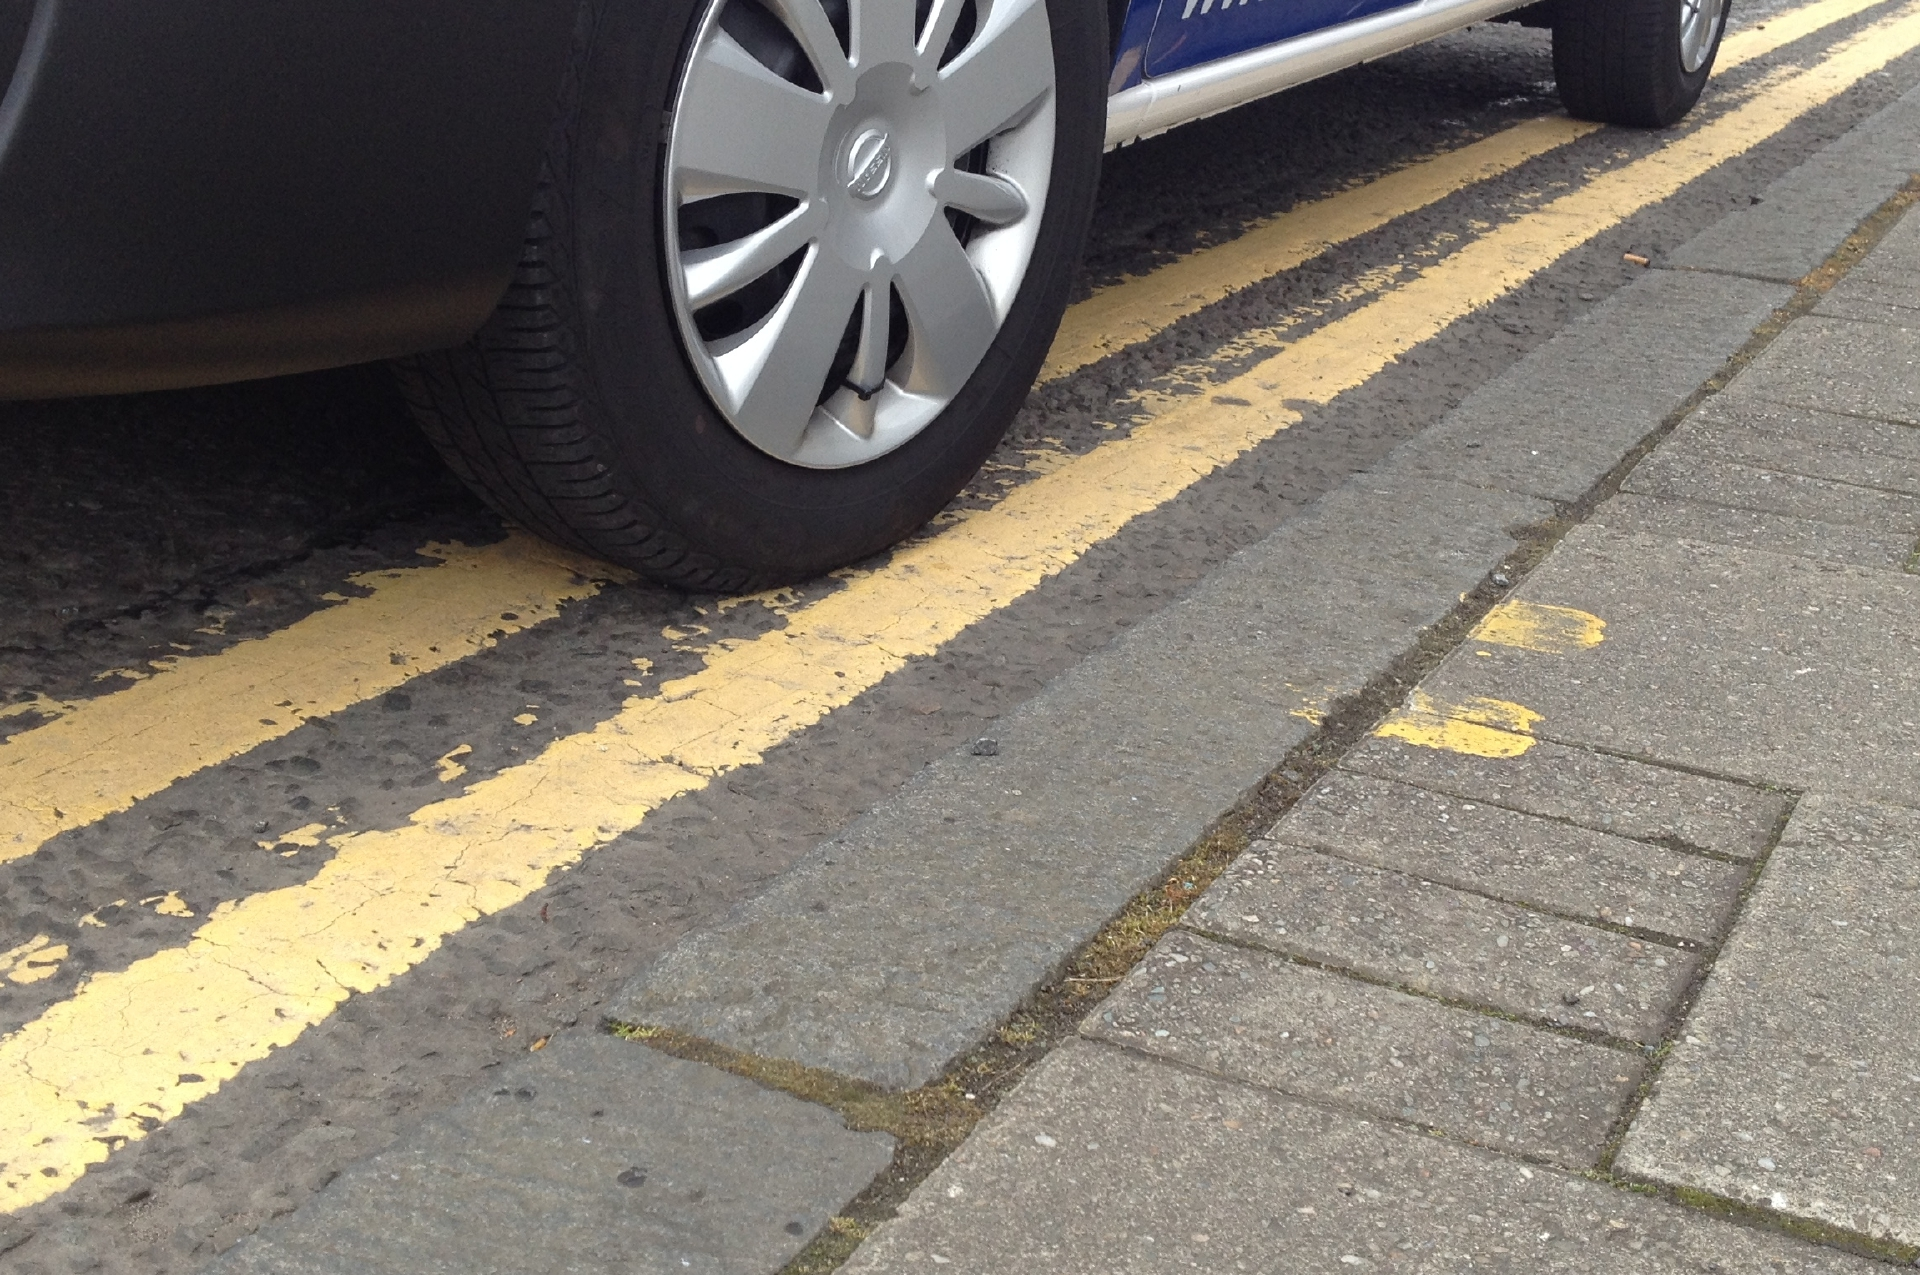 Residents are campaigning for double yellow lines.